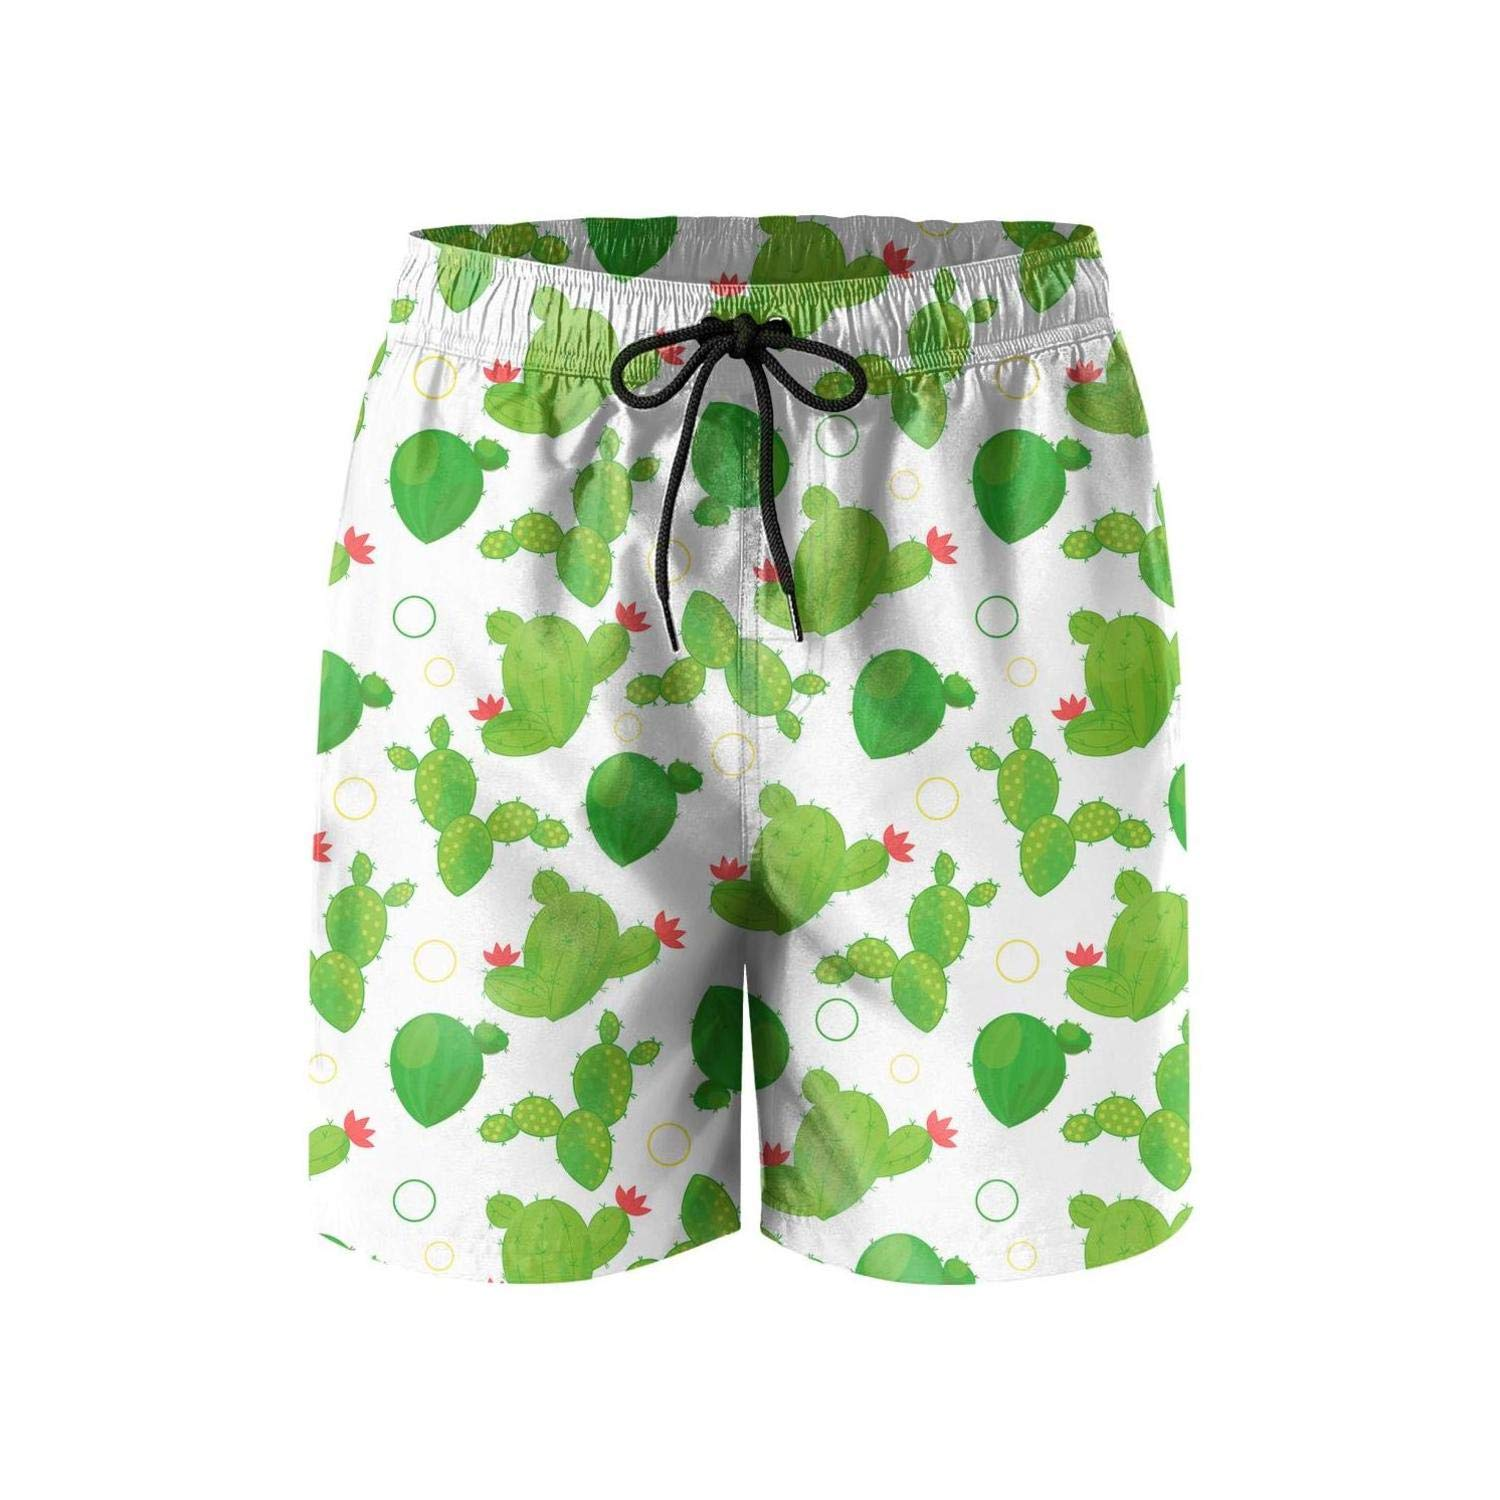 KIENENG Abstract Bright Green Cactus Brown Men Swim Trunks Bathing Suit Stretch Board Shorts